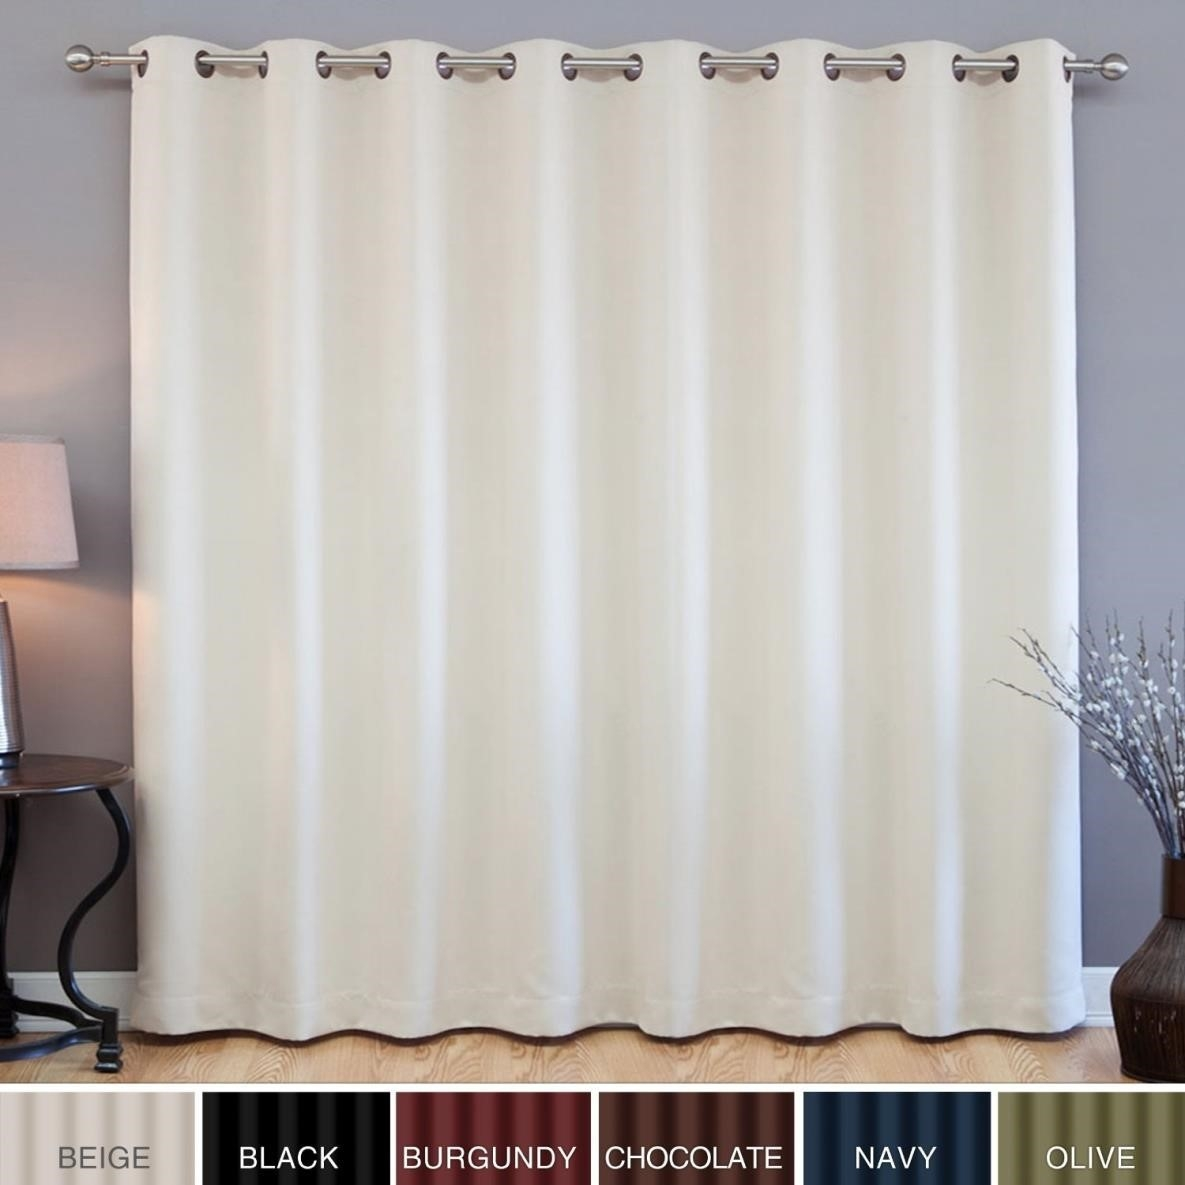 Curtains White Blackout Curtains Curtainss With Regard To White Opaque Curtains (Image 3 of 15)